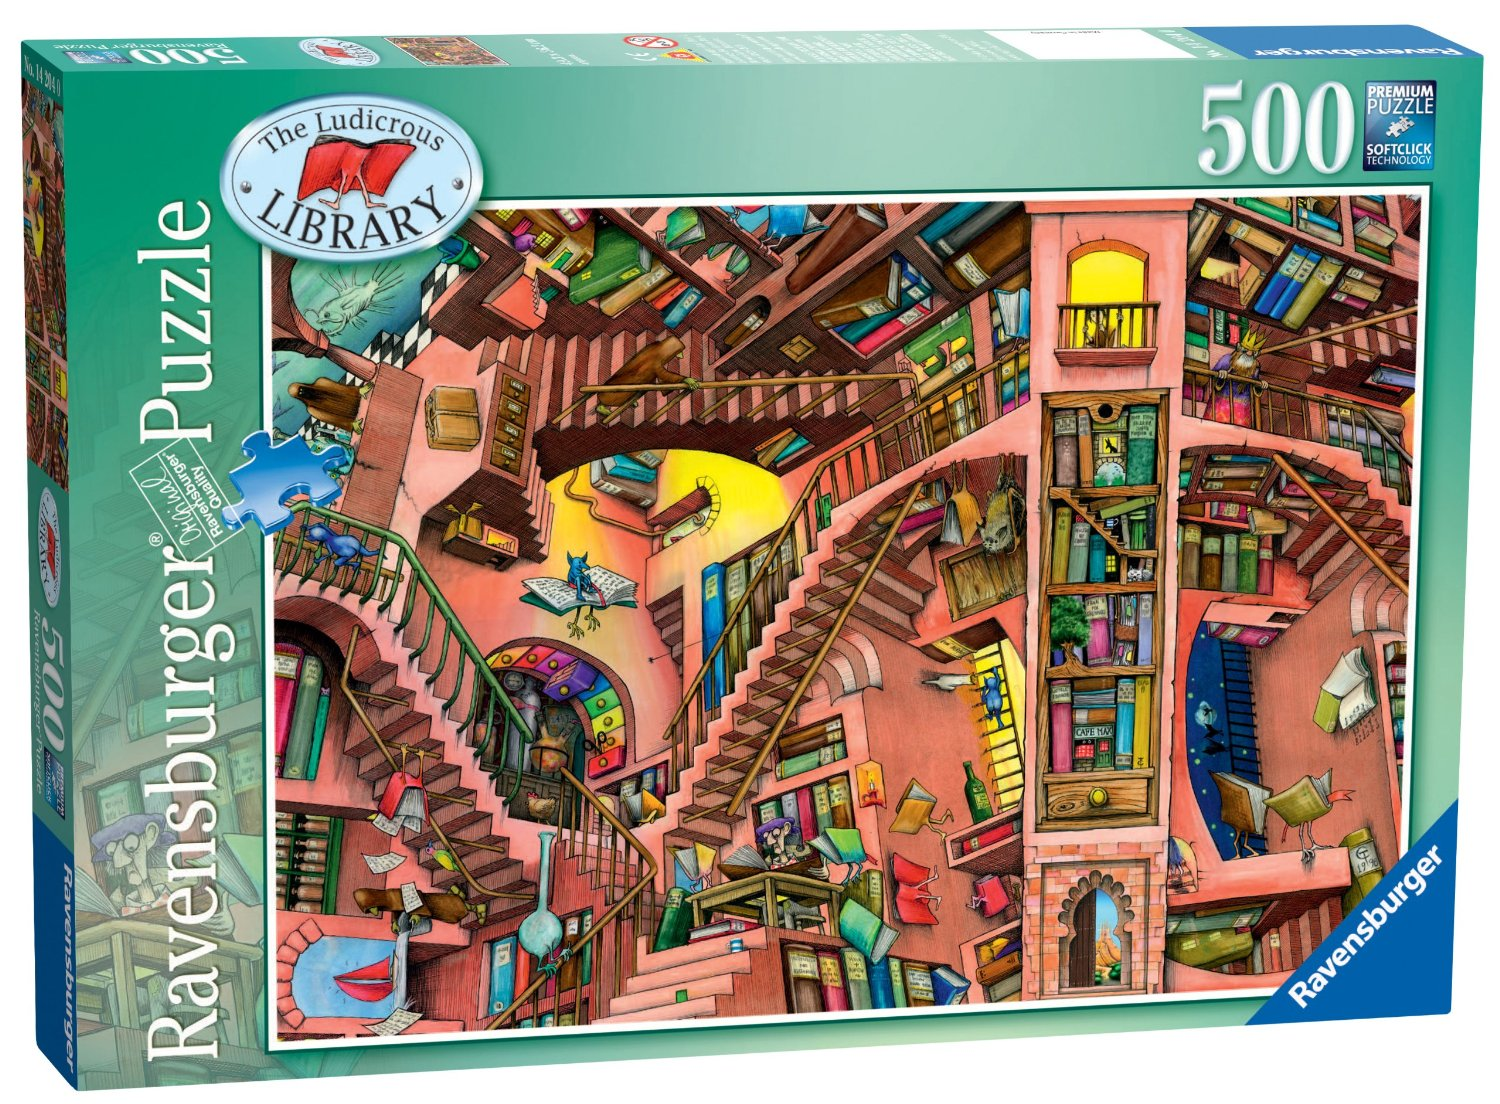 The Ludicrous Library Cartoons Jigsaw Puzzle